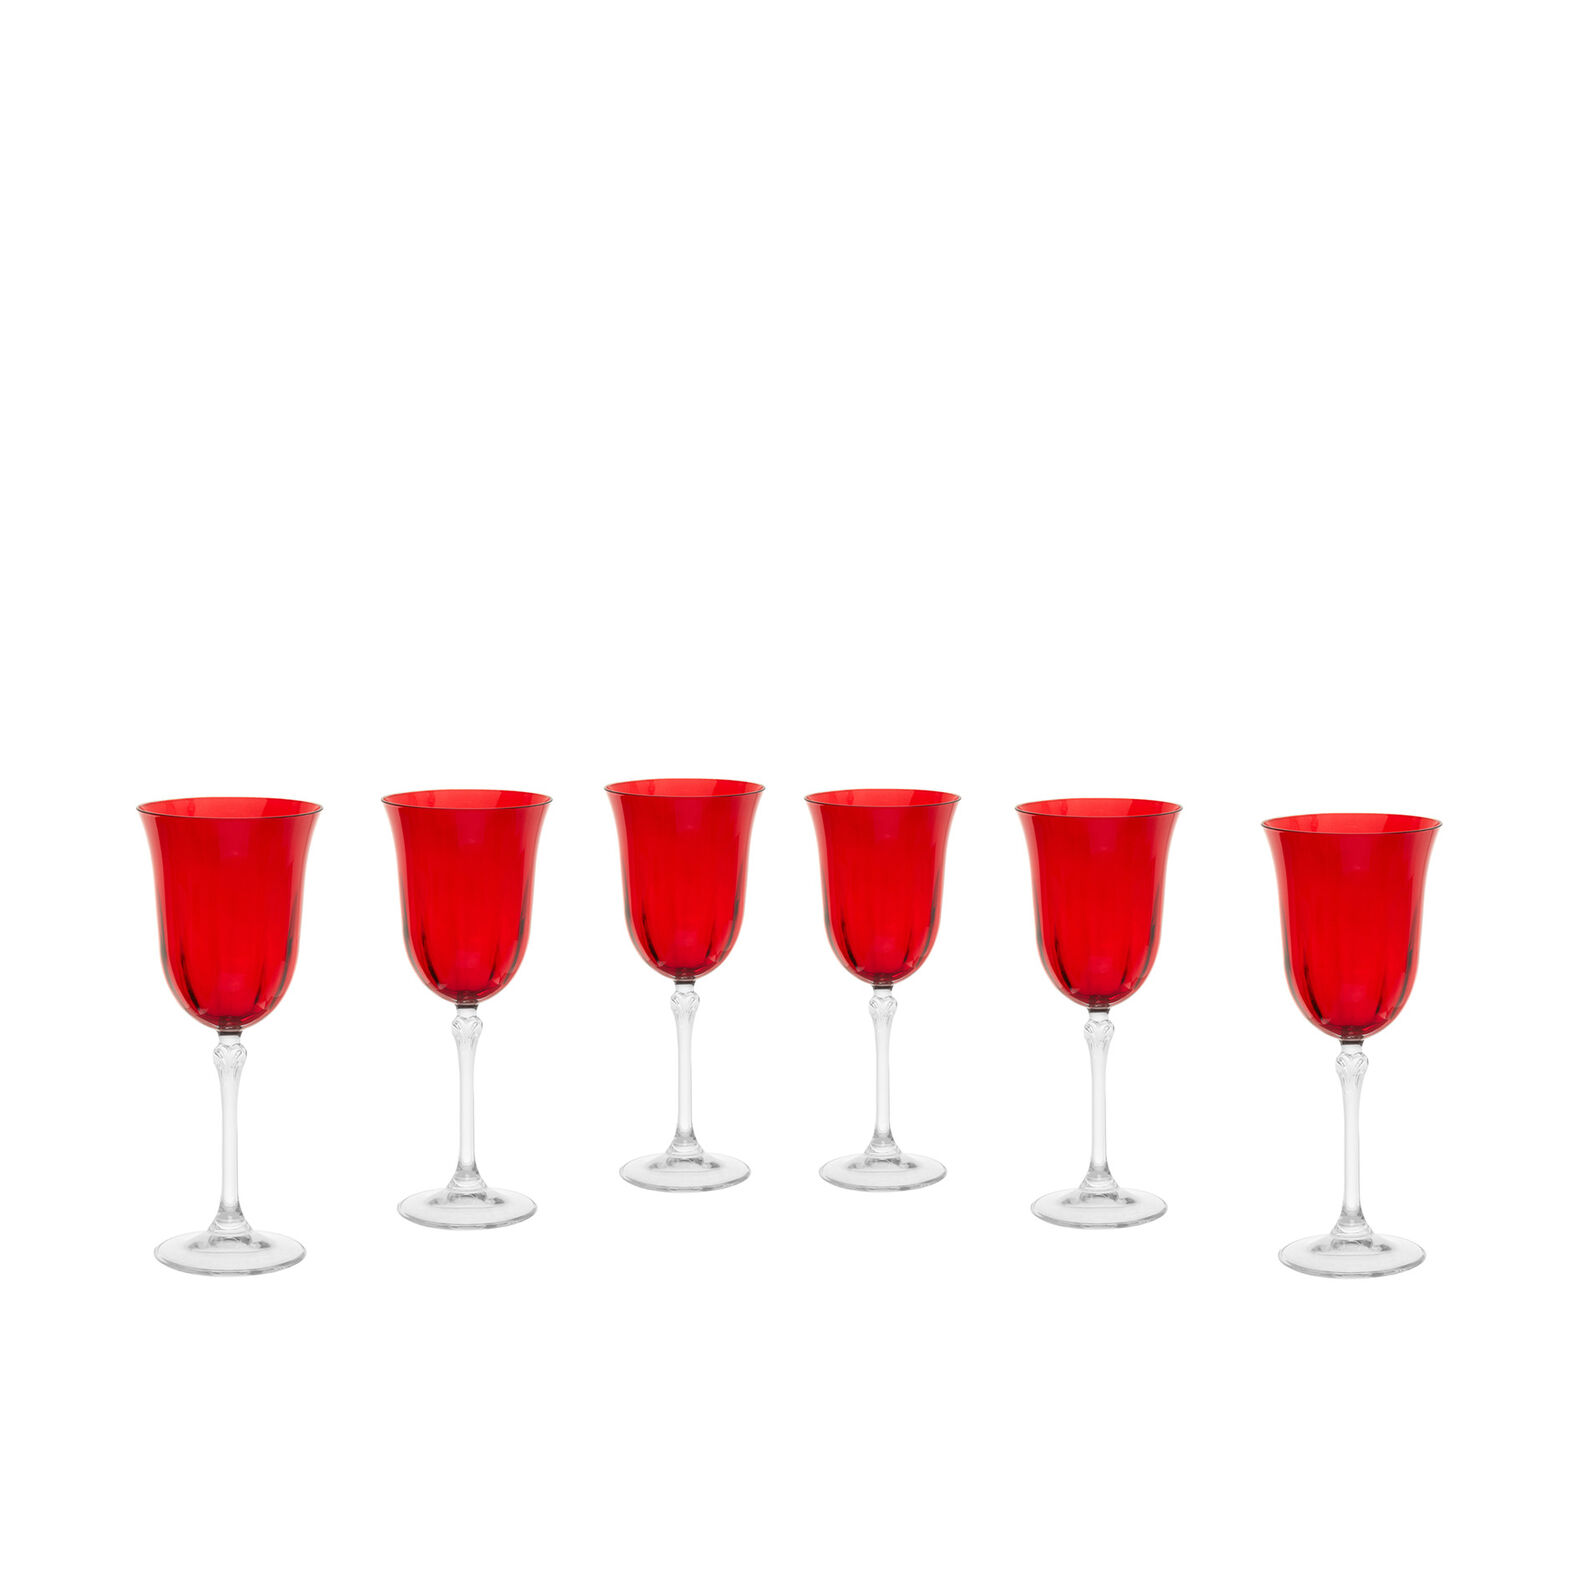 Set of 6 water goblets in red glass